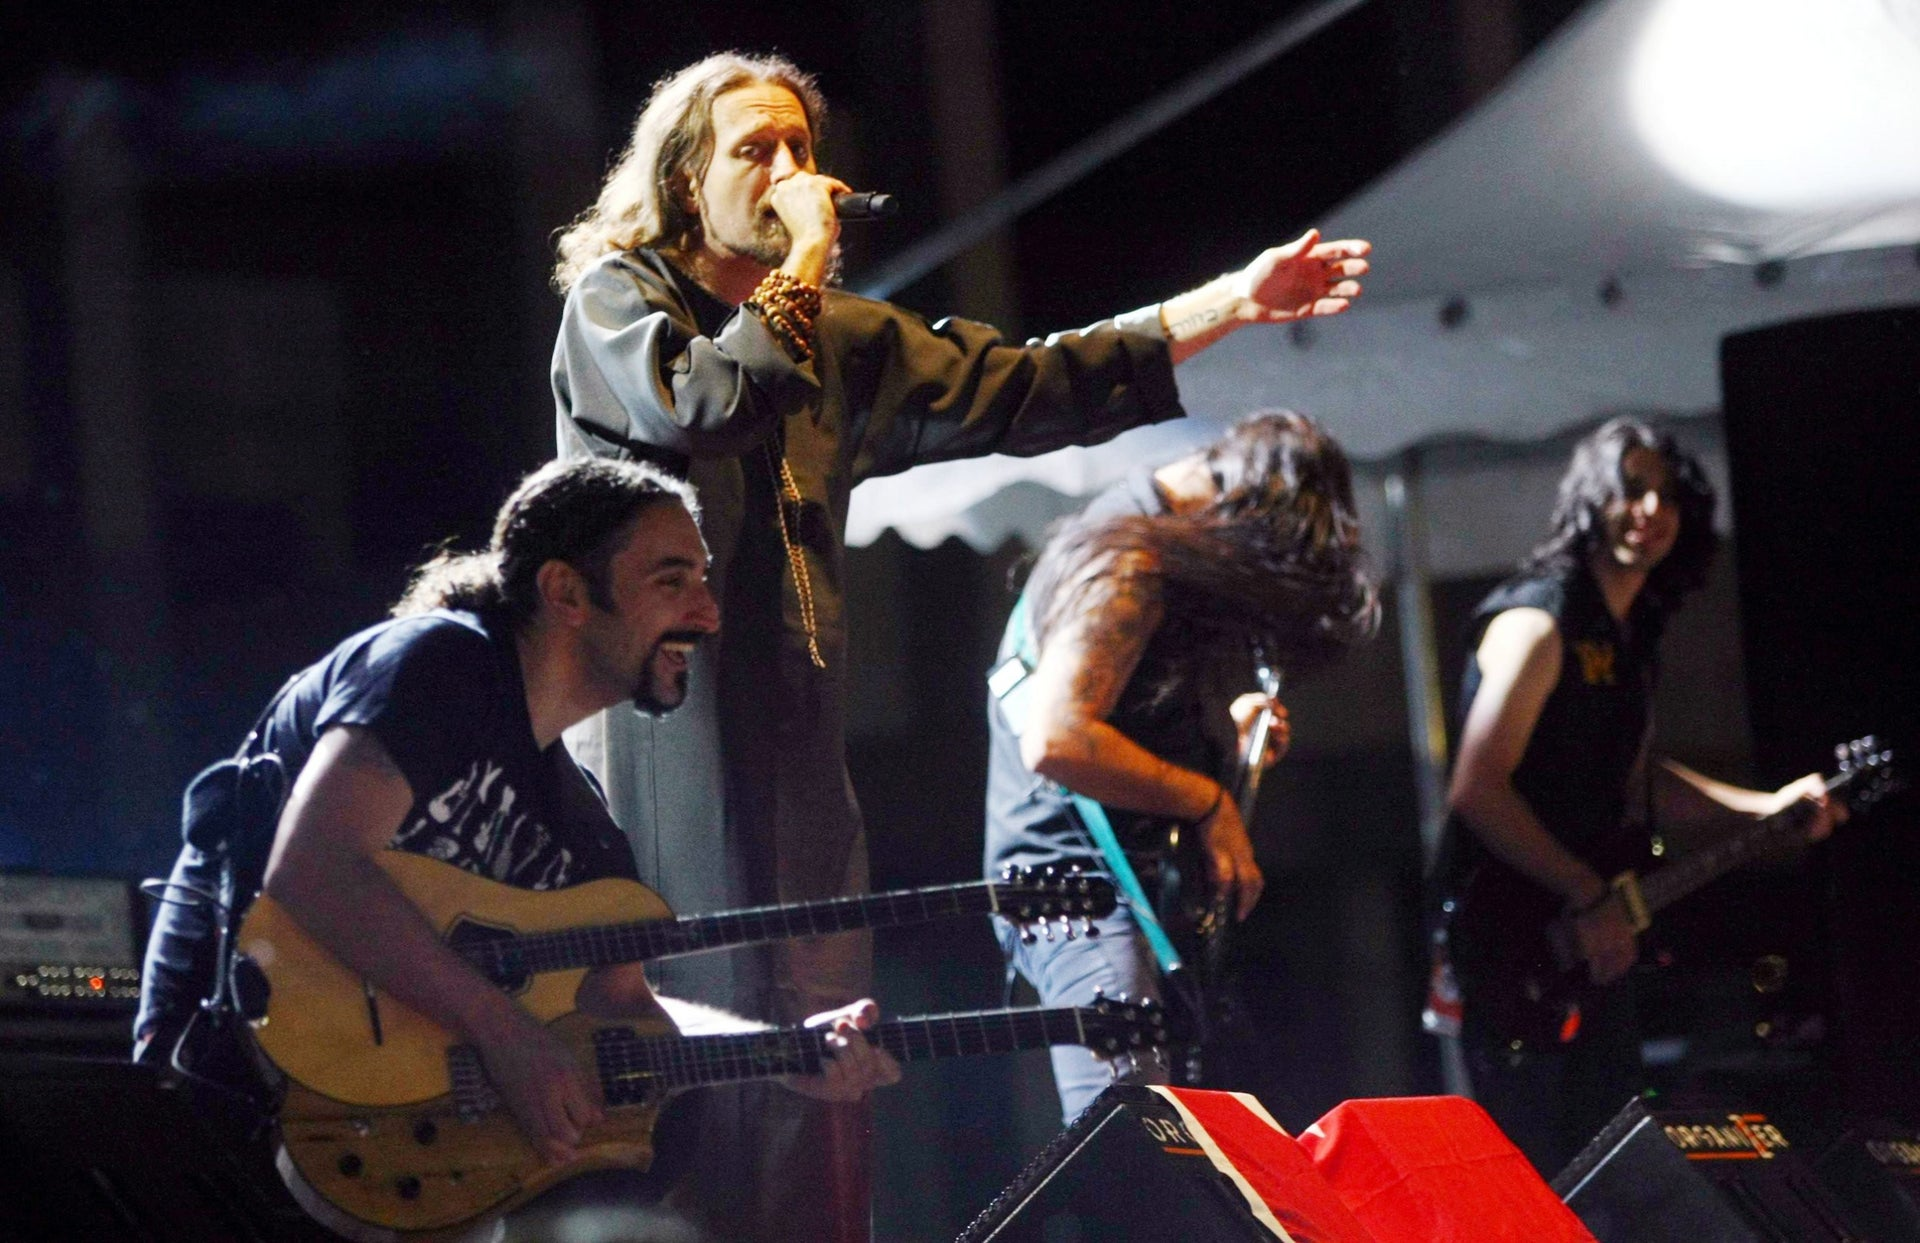 Kobi Farhi, second from left,  lead singer of the Israeli heavy metal band Orphaned Land performing at a music festival in Ankara in  2012.